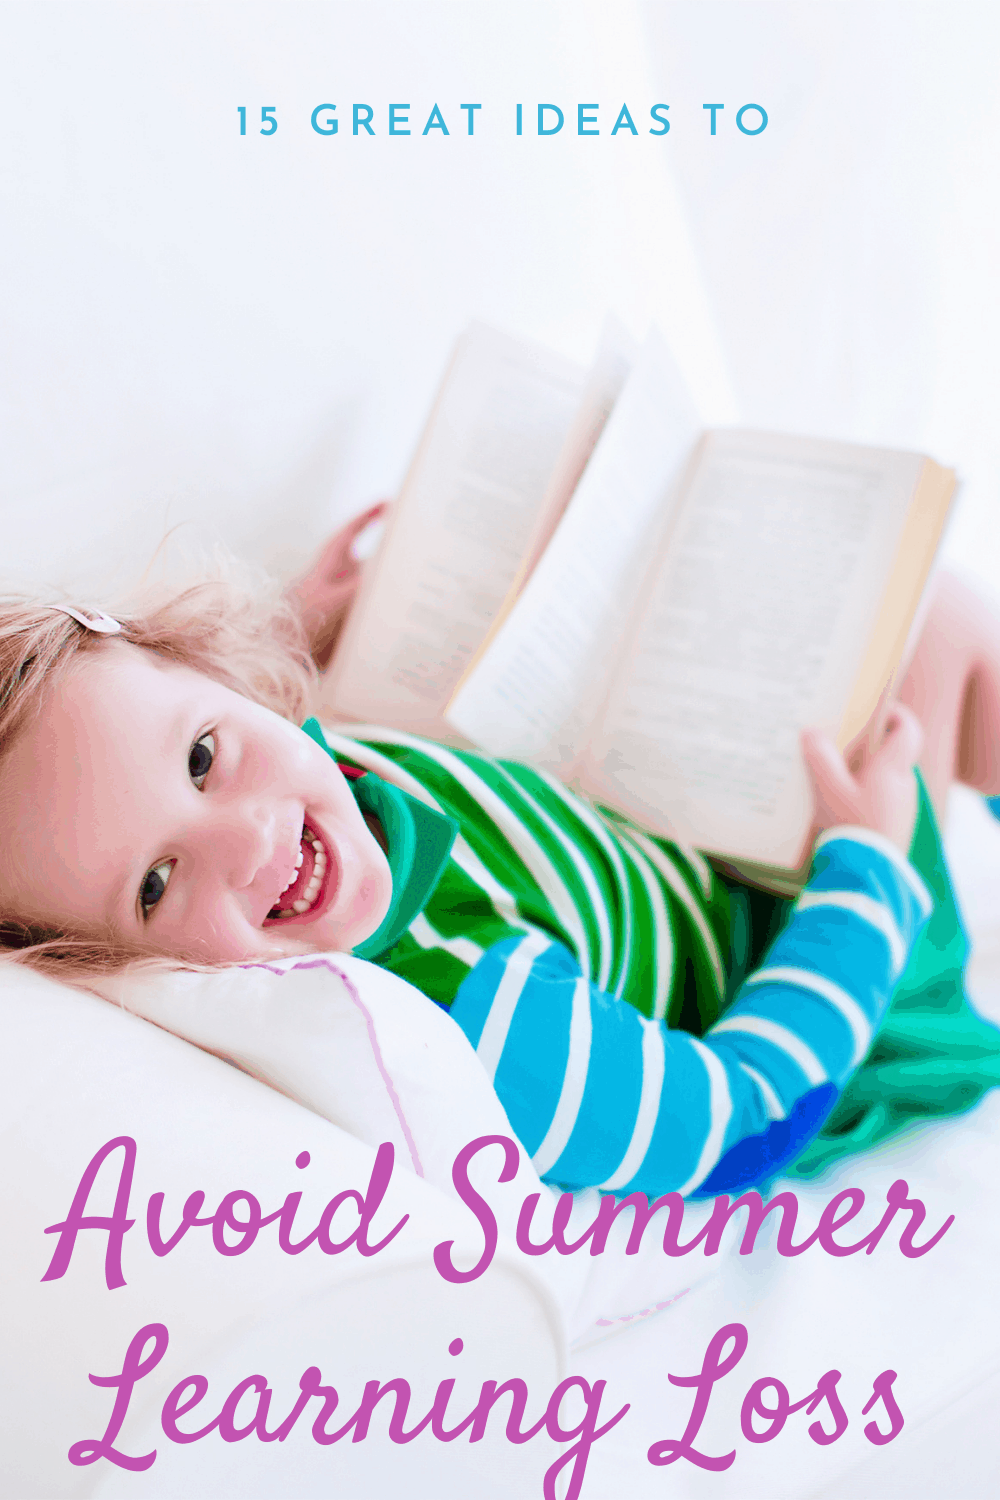 3 Things You Need to Do to Prevent Summer Learning Loss